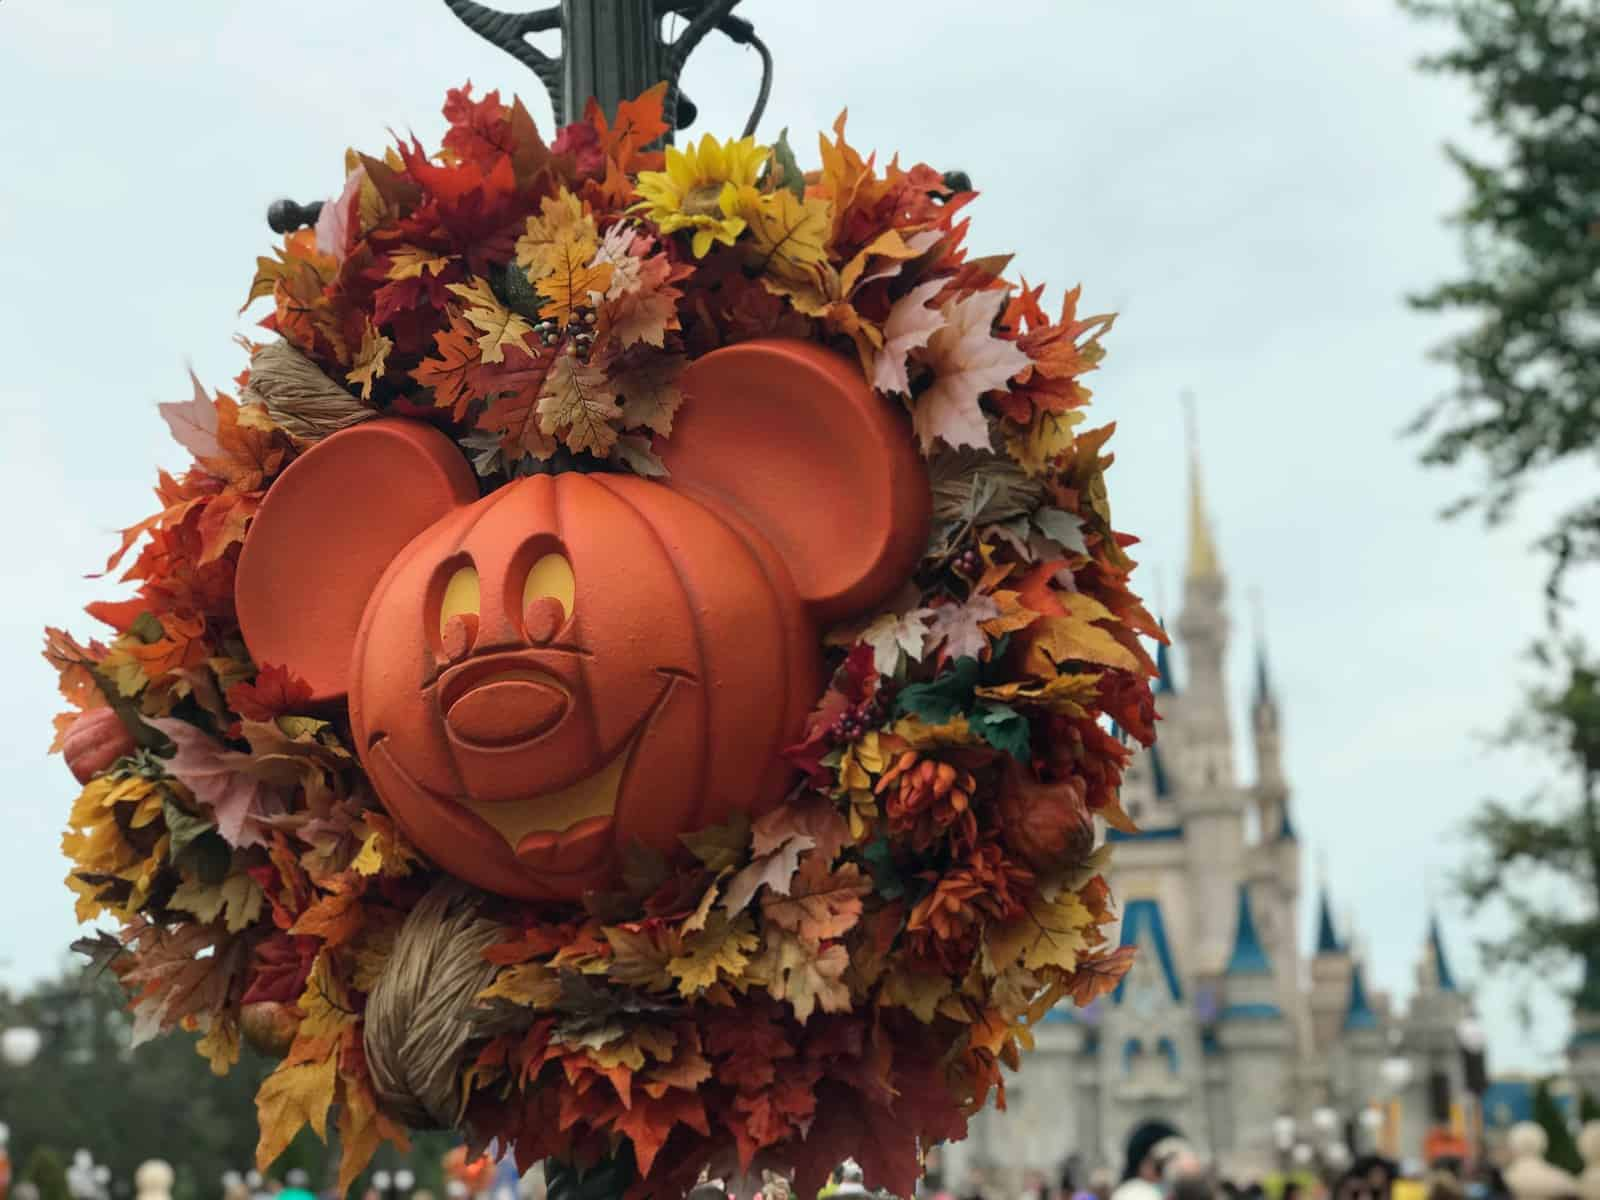 Mickeys Not-So-Scary Halloween Party decorations